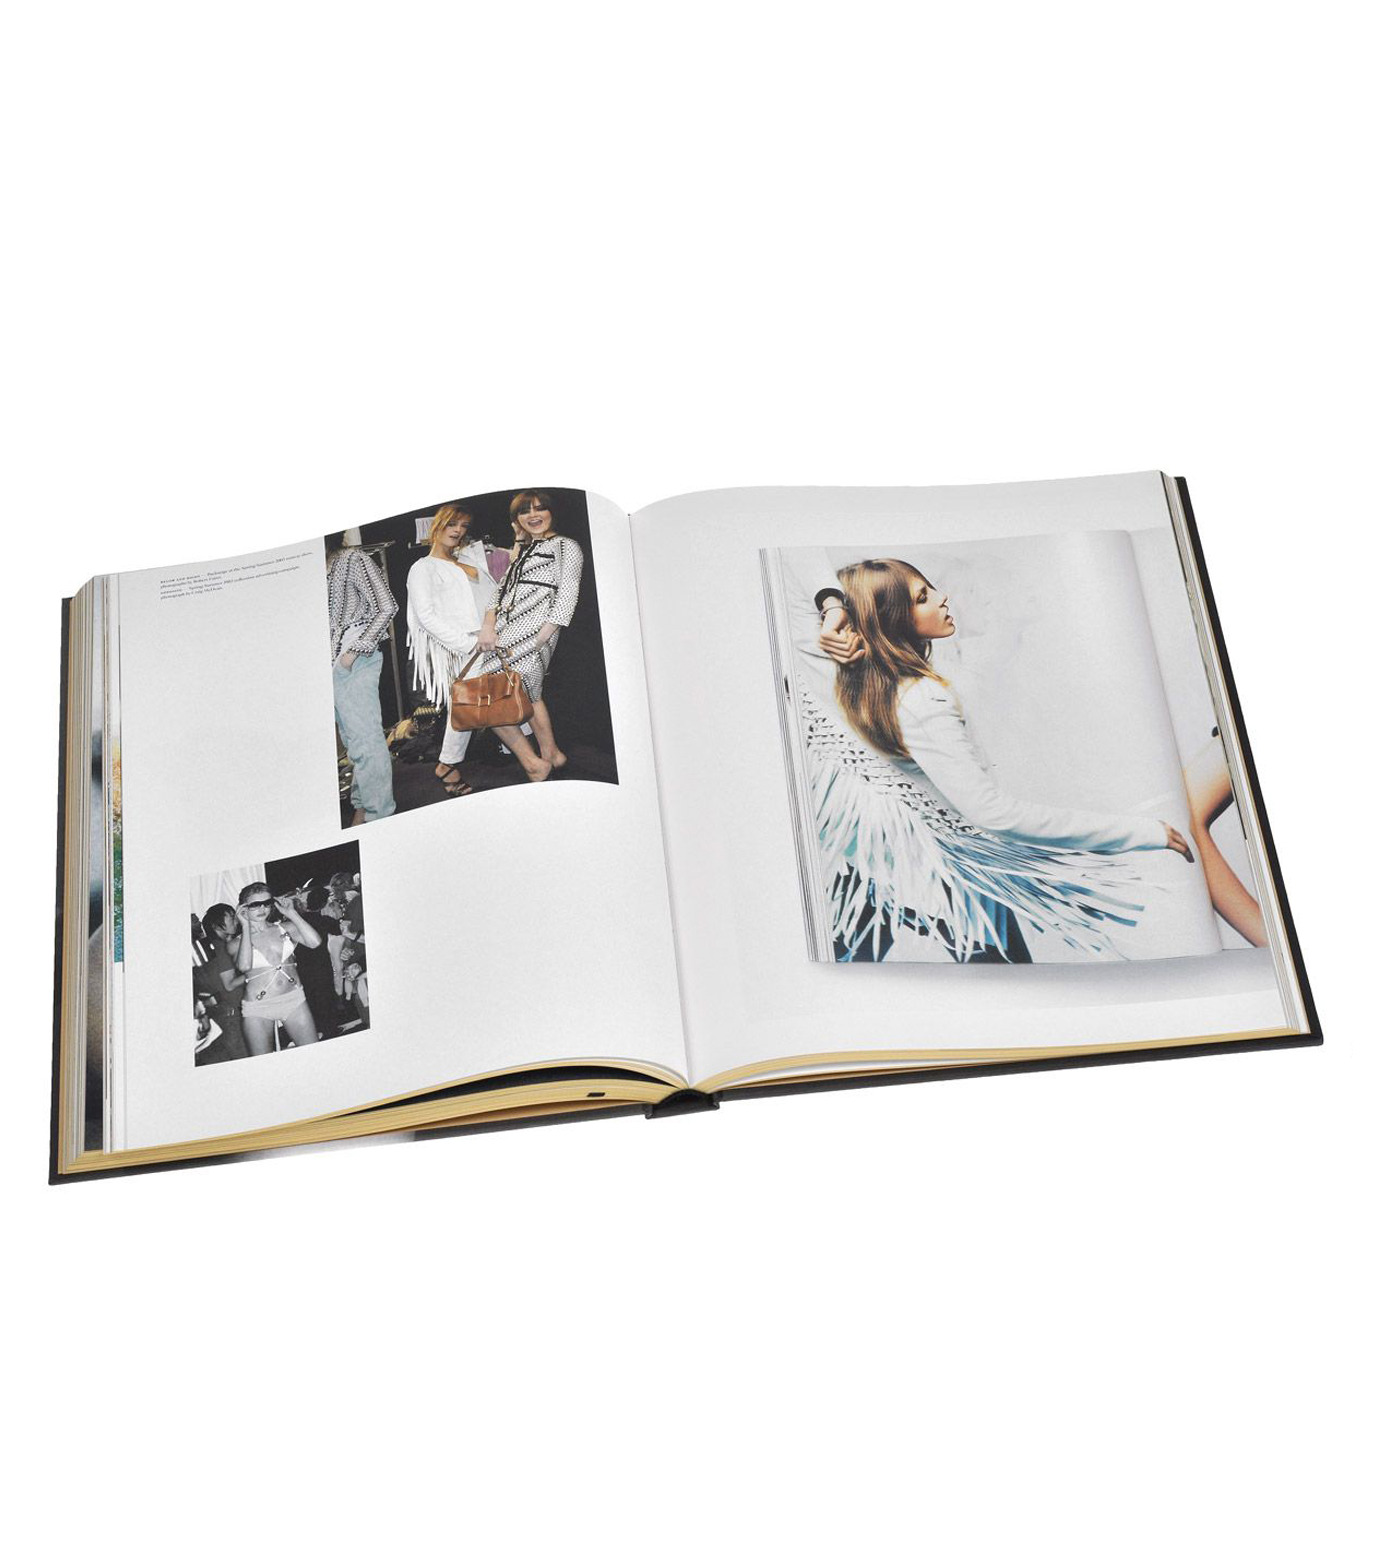 ArtBook(アートブック)のChloe: Six Decades of Style-GRAY(インテリア/OTHER-GOODS/interior/OTHER-GOODS)-8478-3852-3-11 拡大詳細画像4